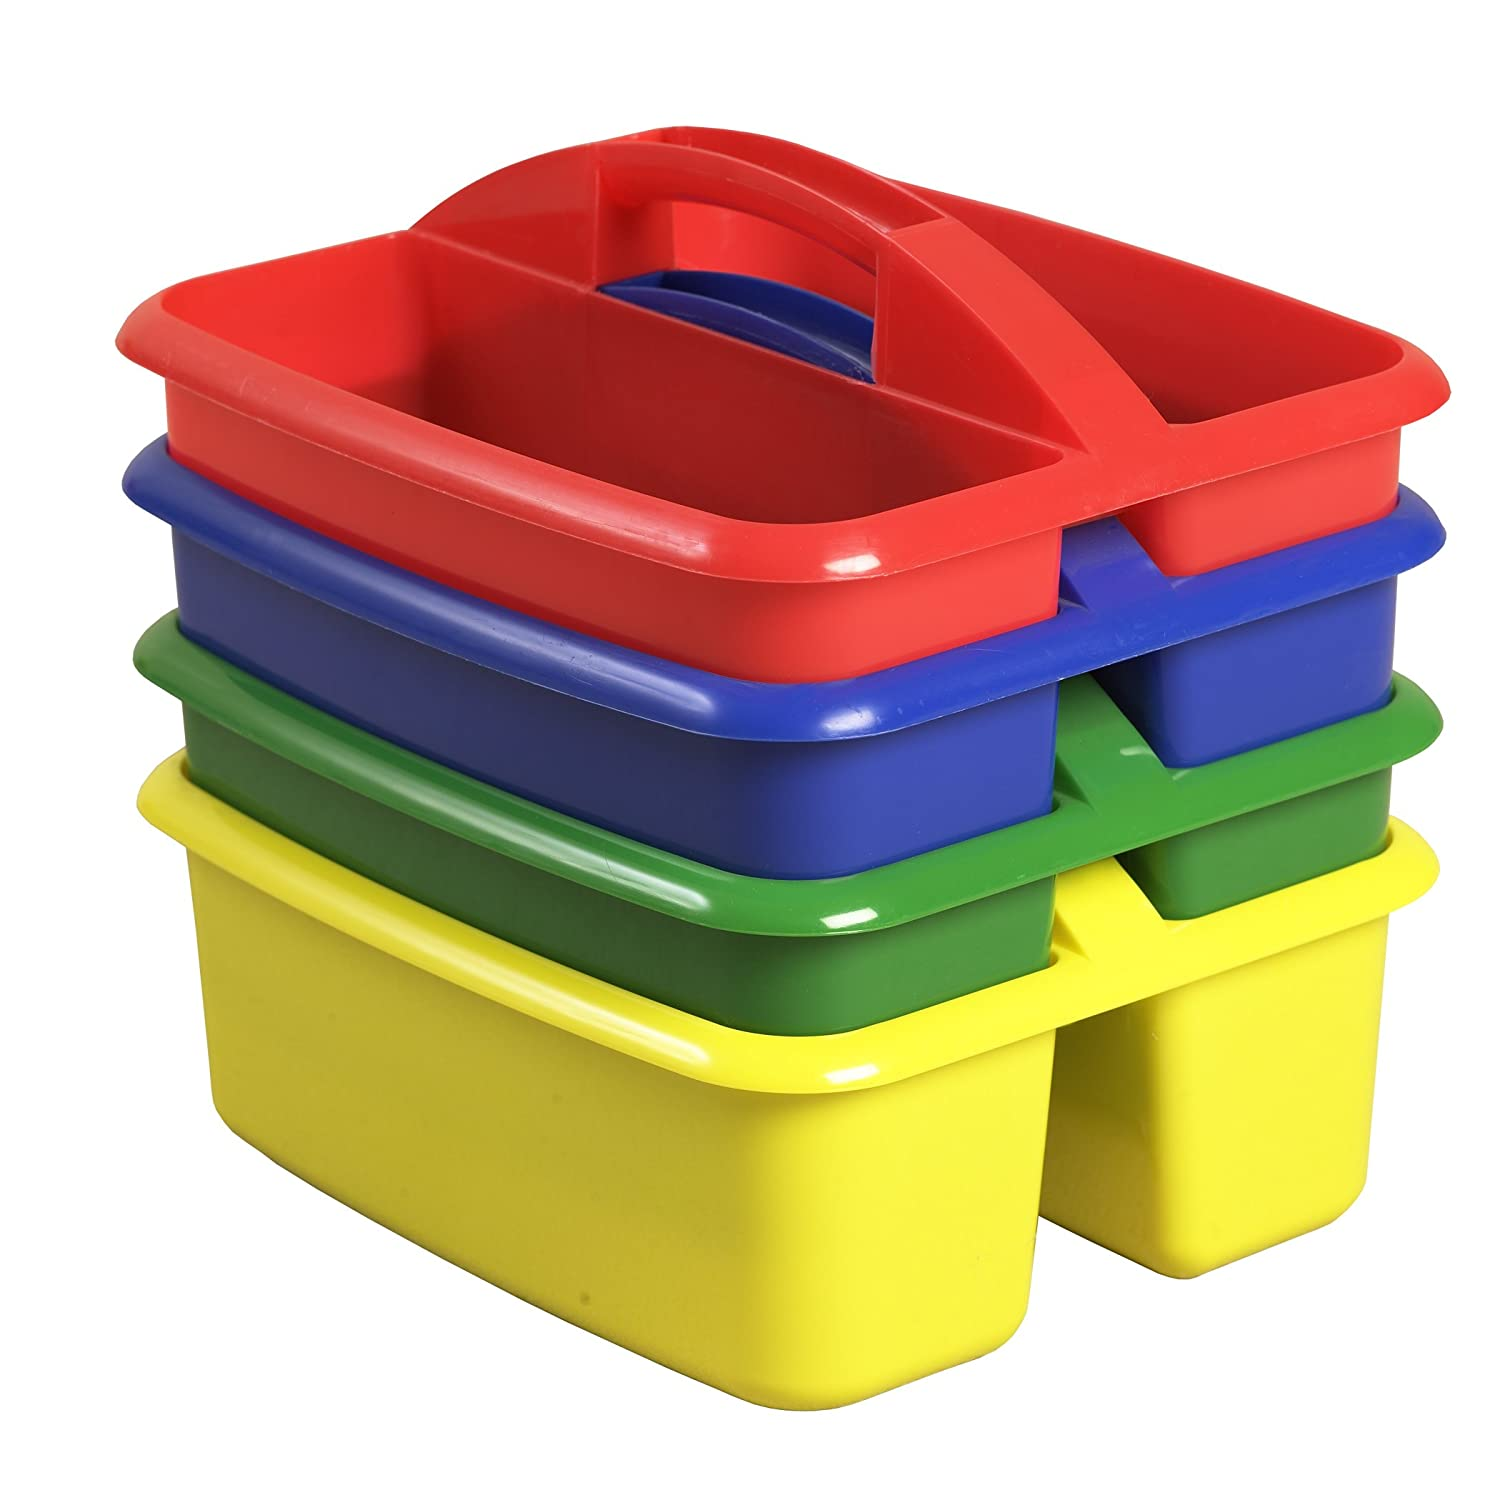 ECR4Kids 2-Compartment Large Plastic Art Caddy Pack of 4 Assorted Colors Vary